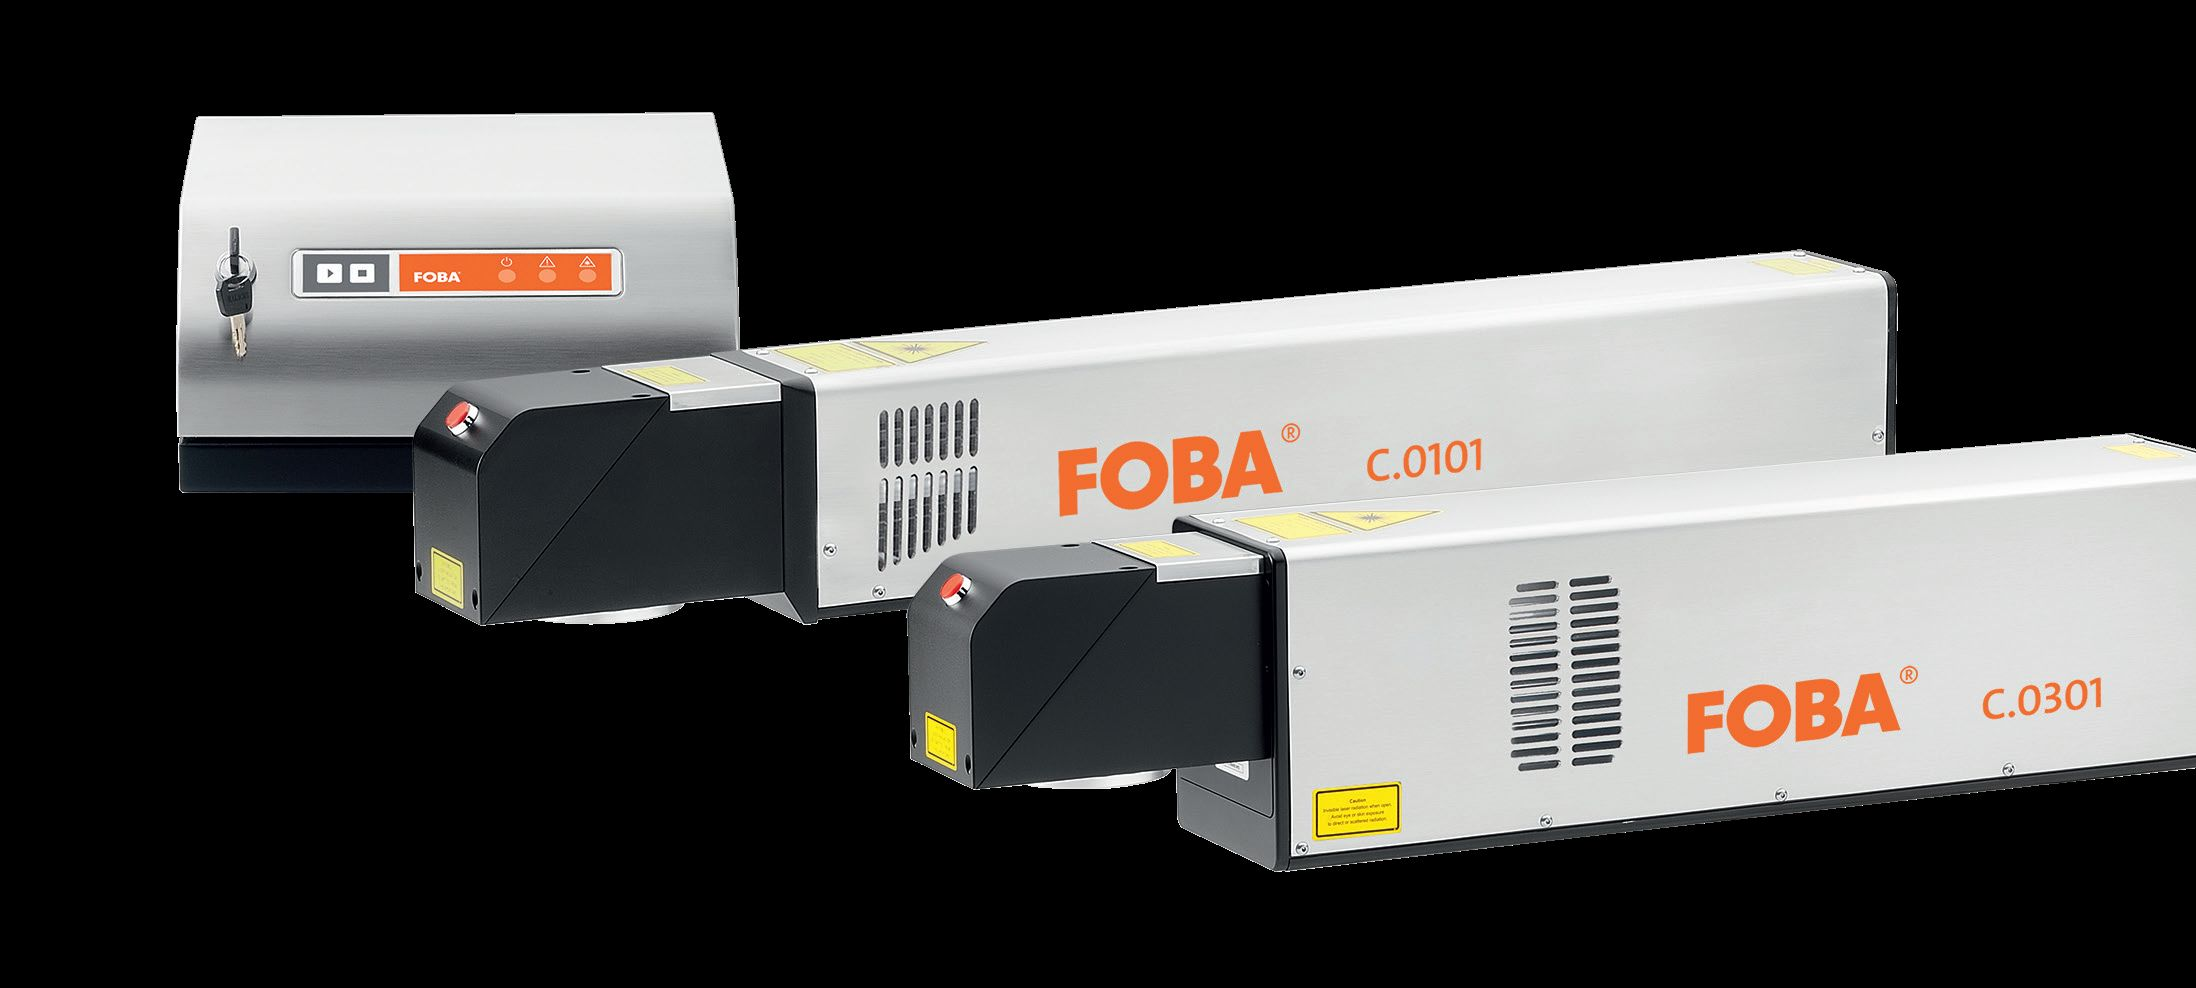 FOBA Laser Marking Machine (C.0101/C.0301)